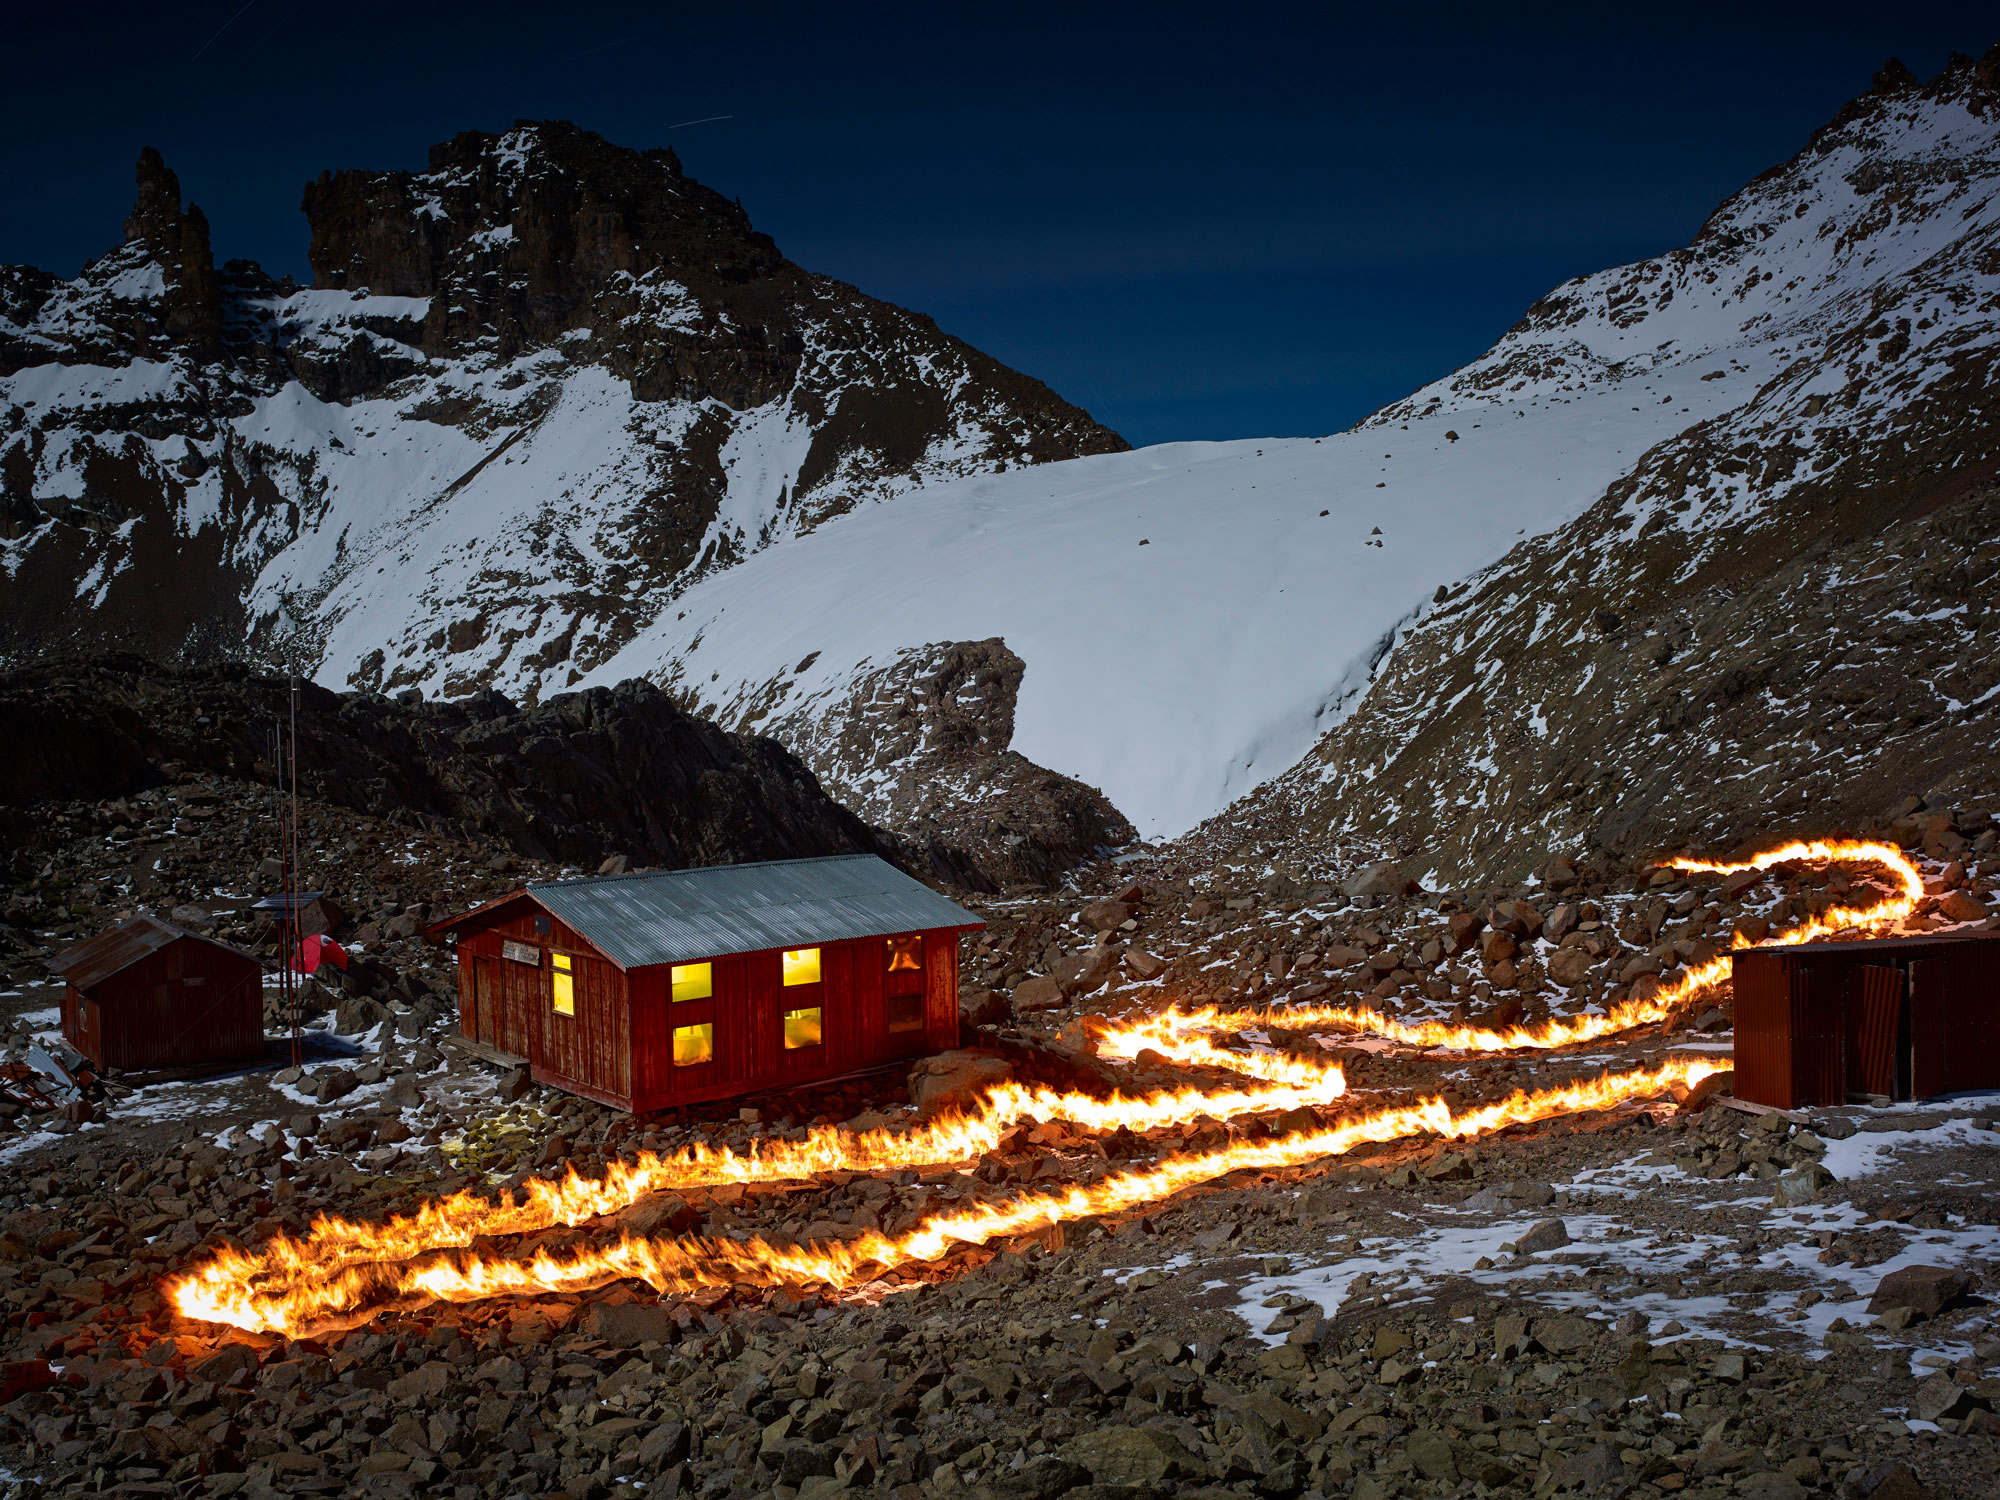 A photograph of a cabin and outbuildings in front of mountain peaks and a snow-covered glacier. A loop of fire runs in front of the cabin.